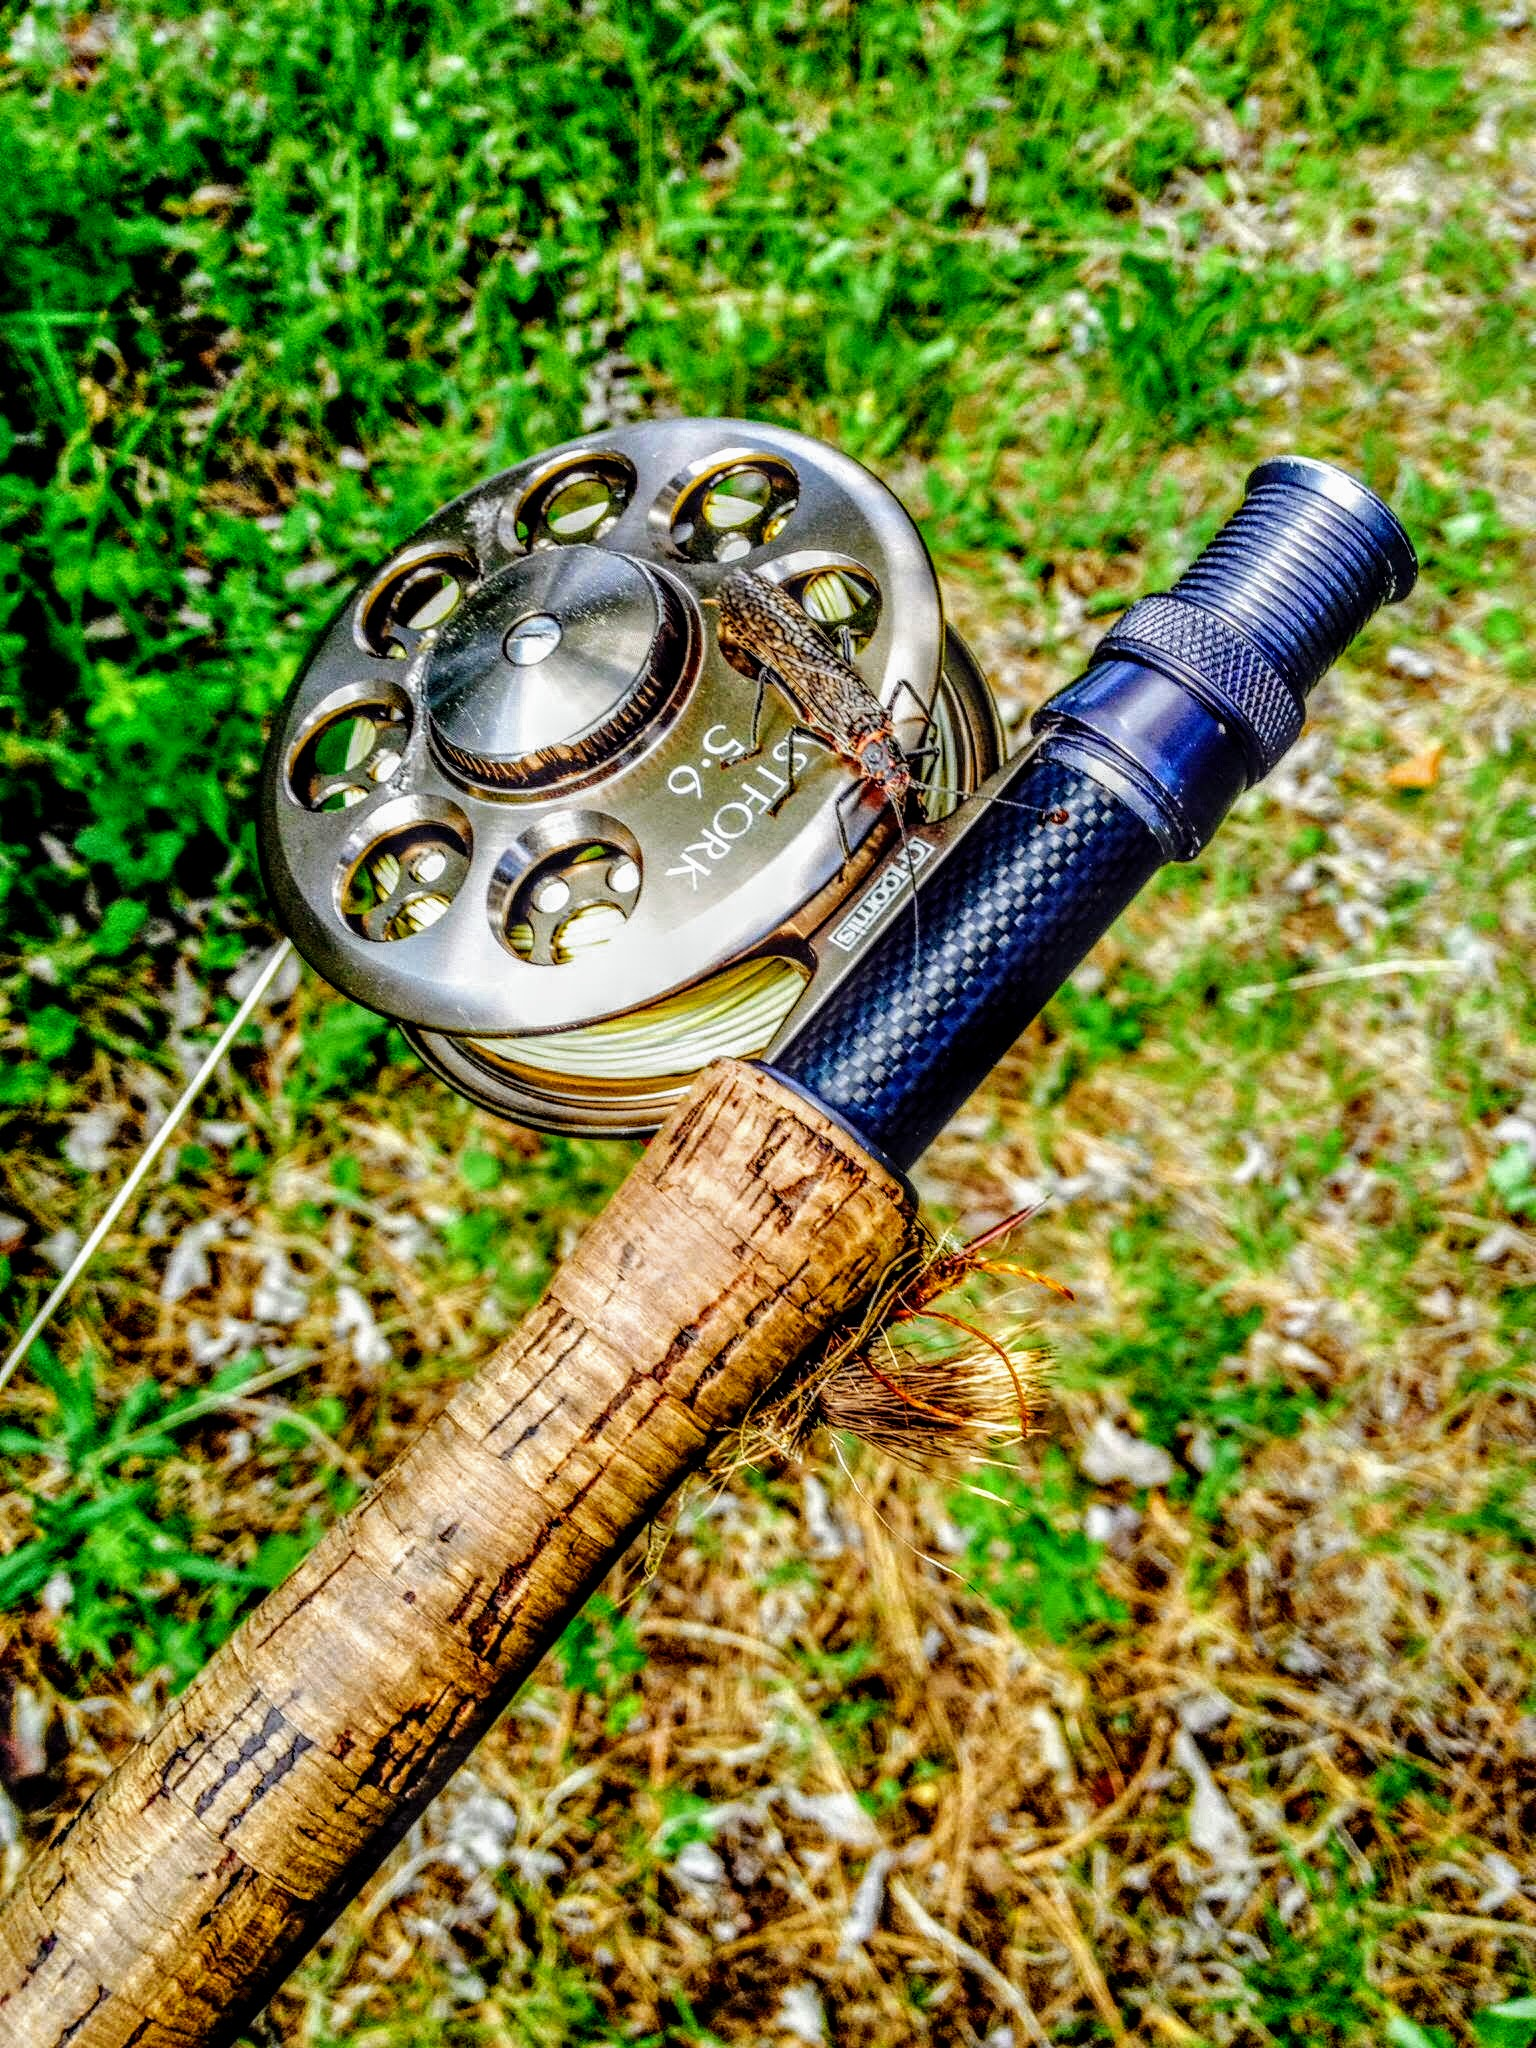 Bunyan Bug on a reel